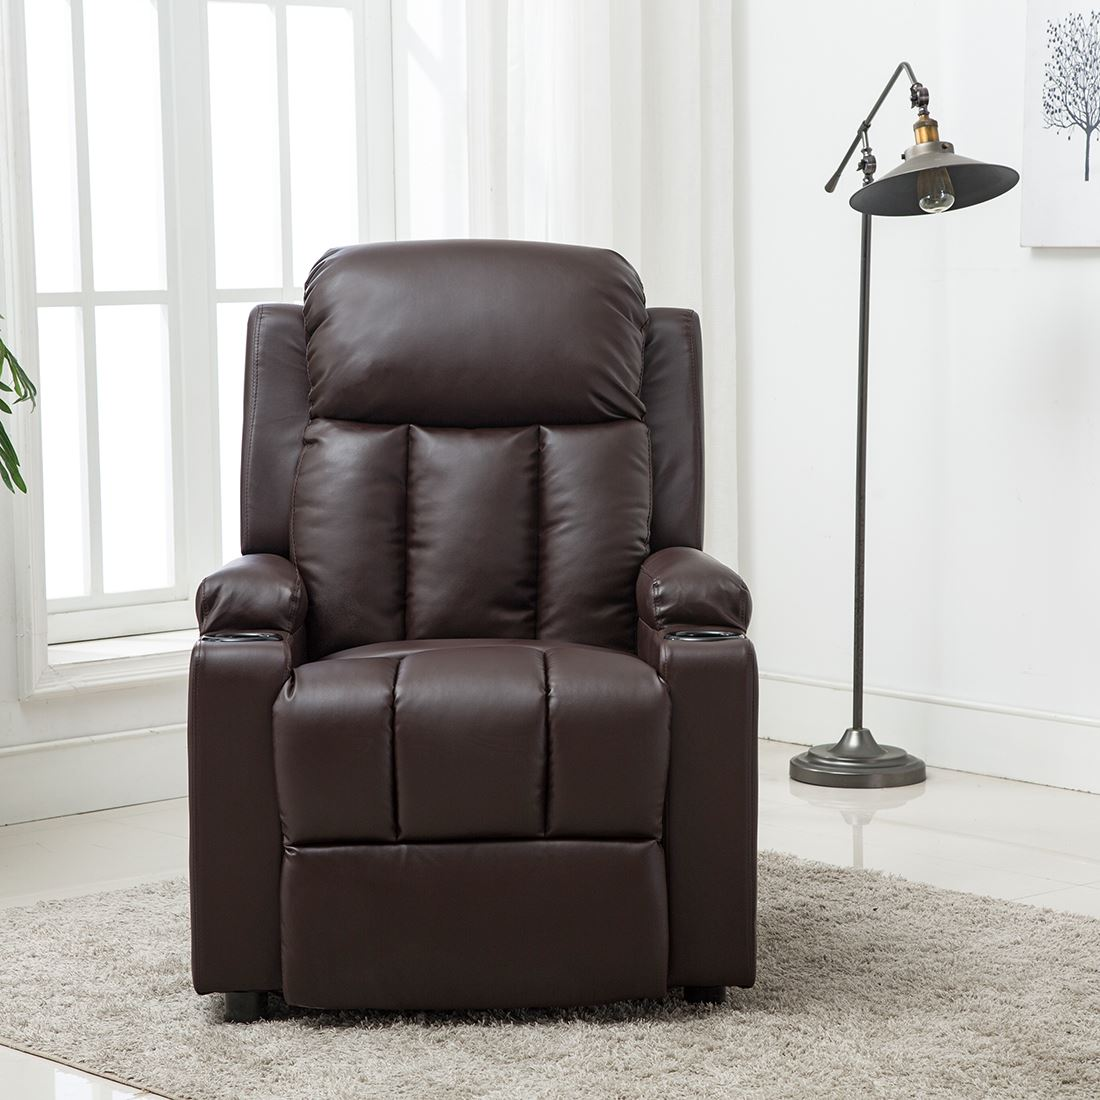 STUDIO-LEATHER-RECLINER-w-DRINK-HOLDERS-ARMCHAIR-SOFA-CHAIR-CINEMA-GAMING thumbnail 12